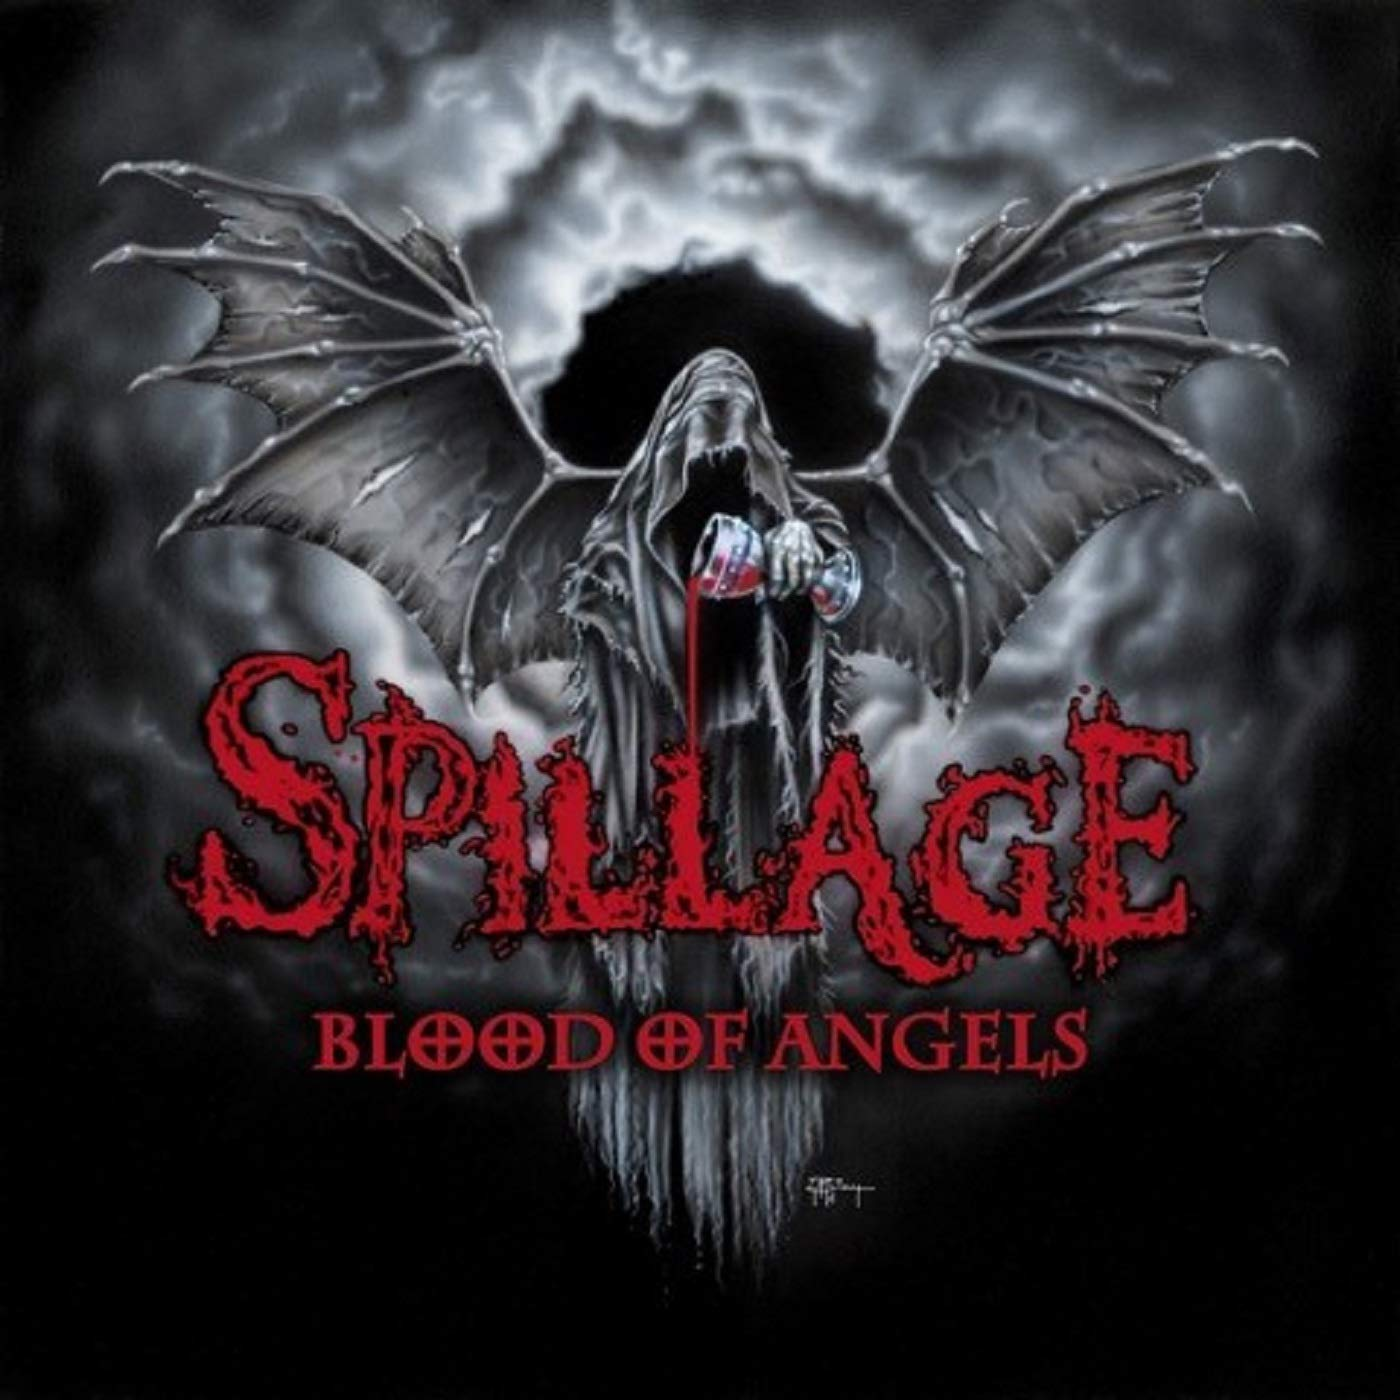 Vinilo : Spillage - Blood Of Angels (LP Vinyl)